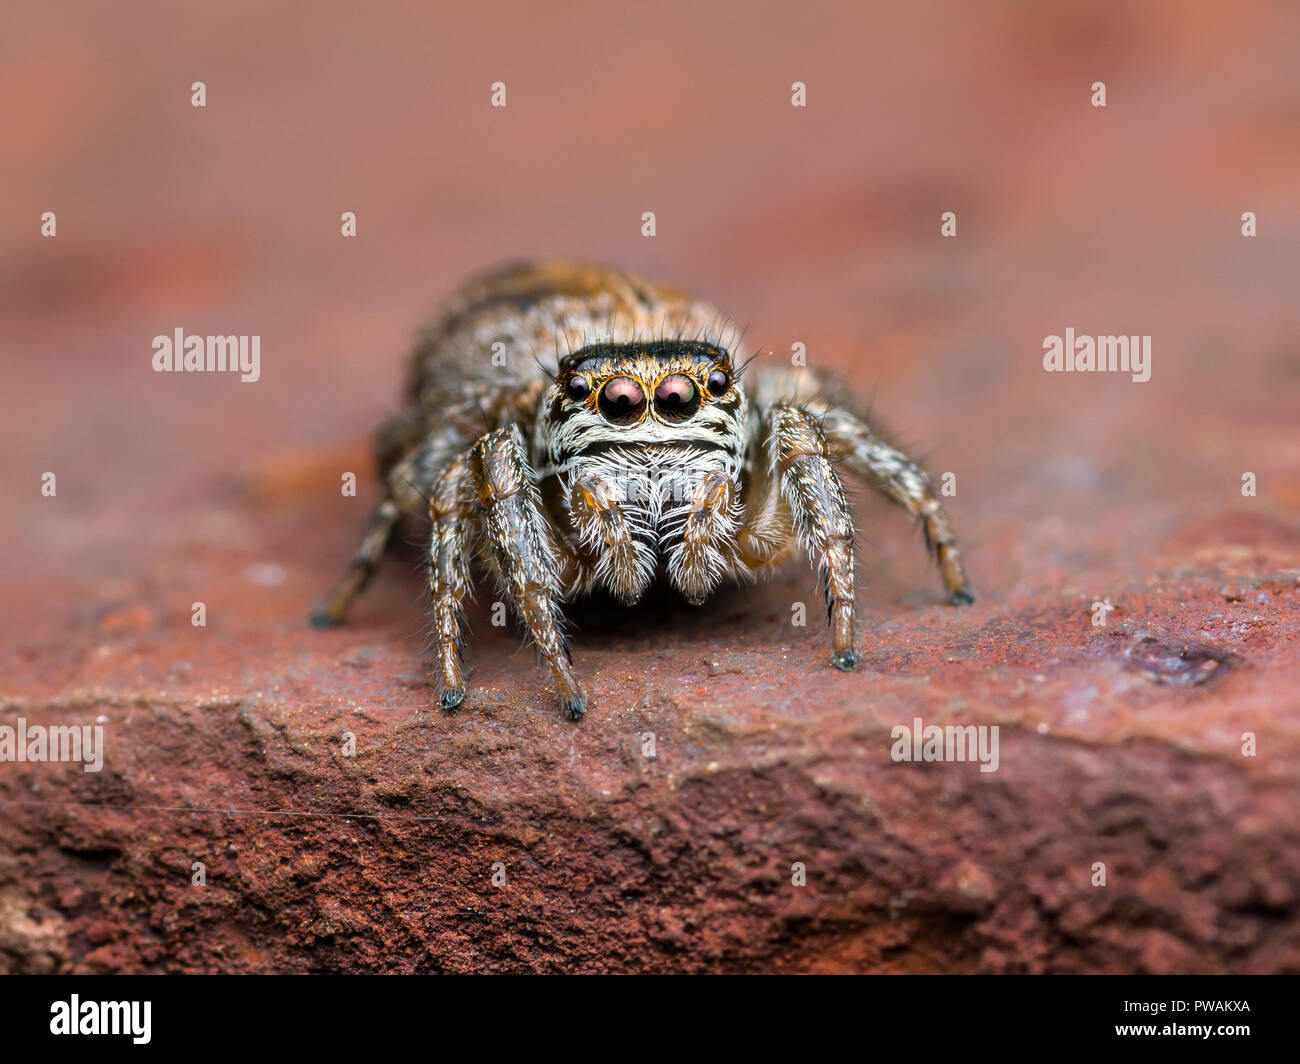 Jumping Spider Arachnid Insect Macro on Brown Background - Stock Image